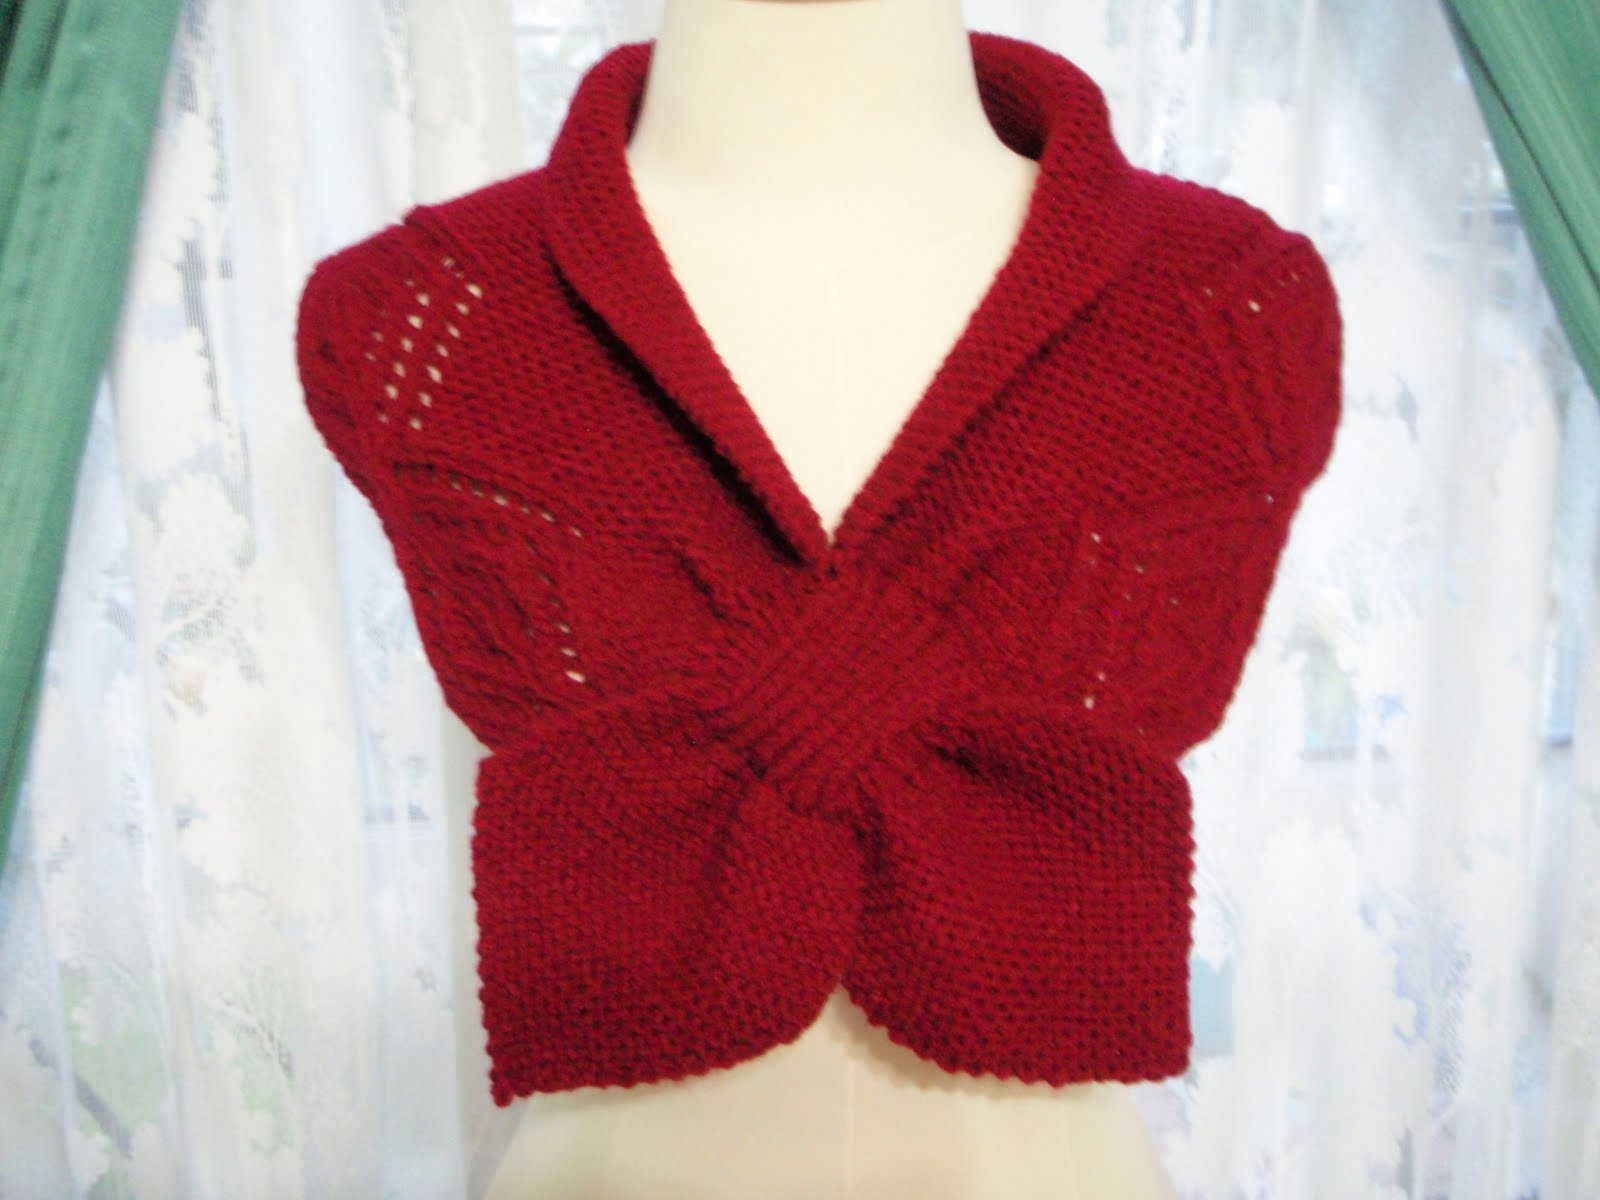 Myknittingdaily: Knitting Neckwarmer in Berry Red